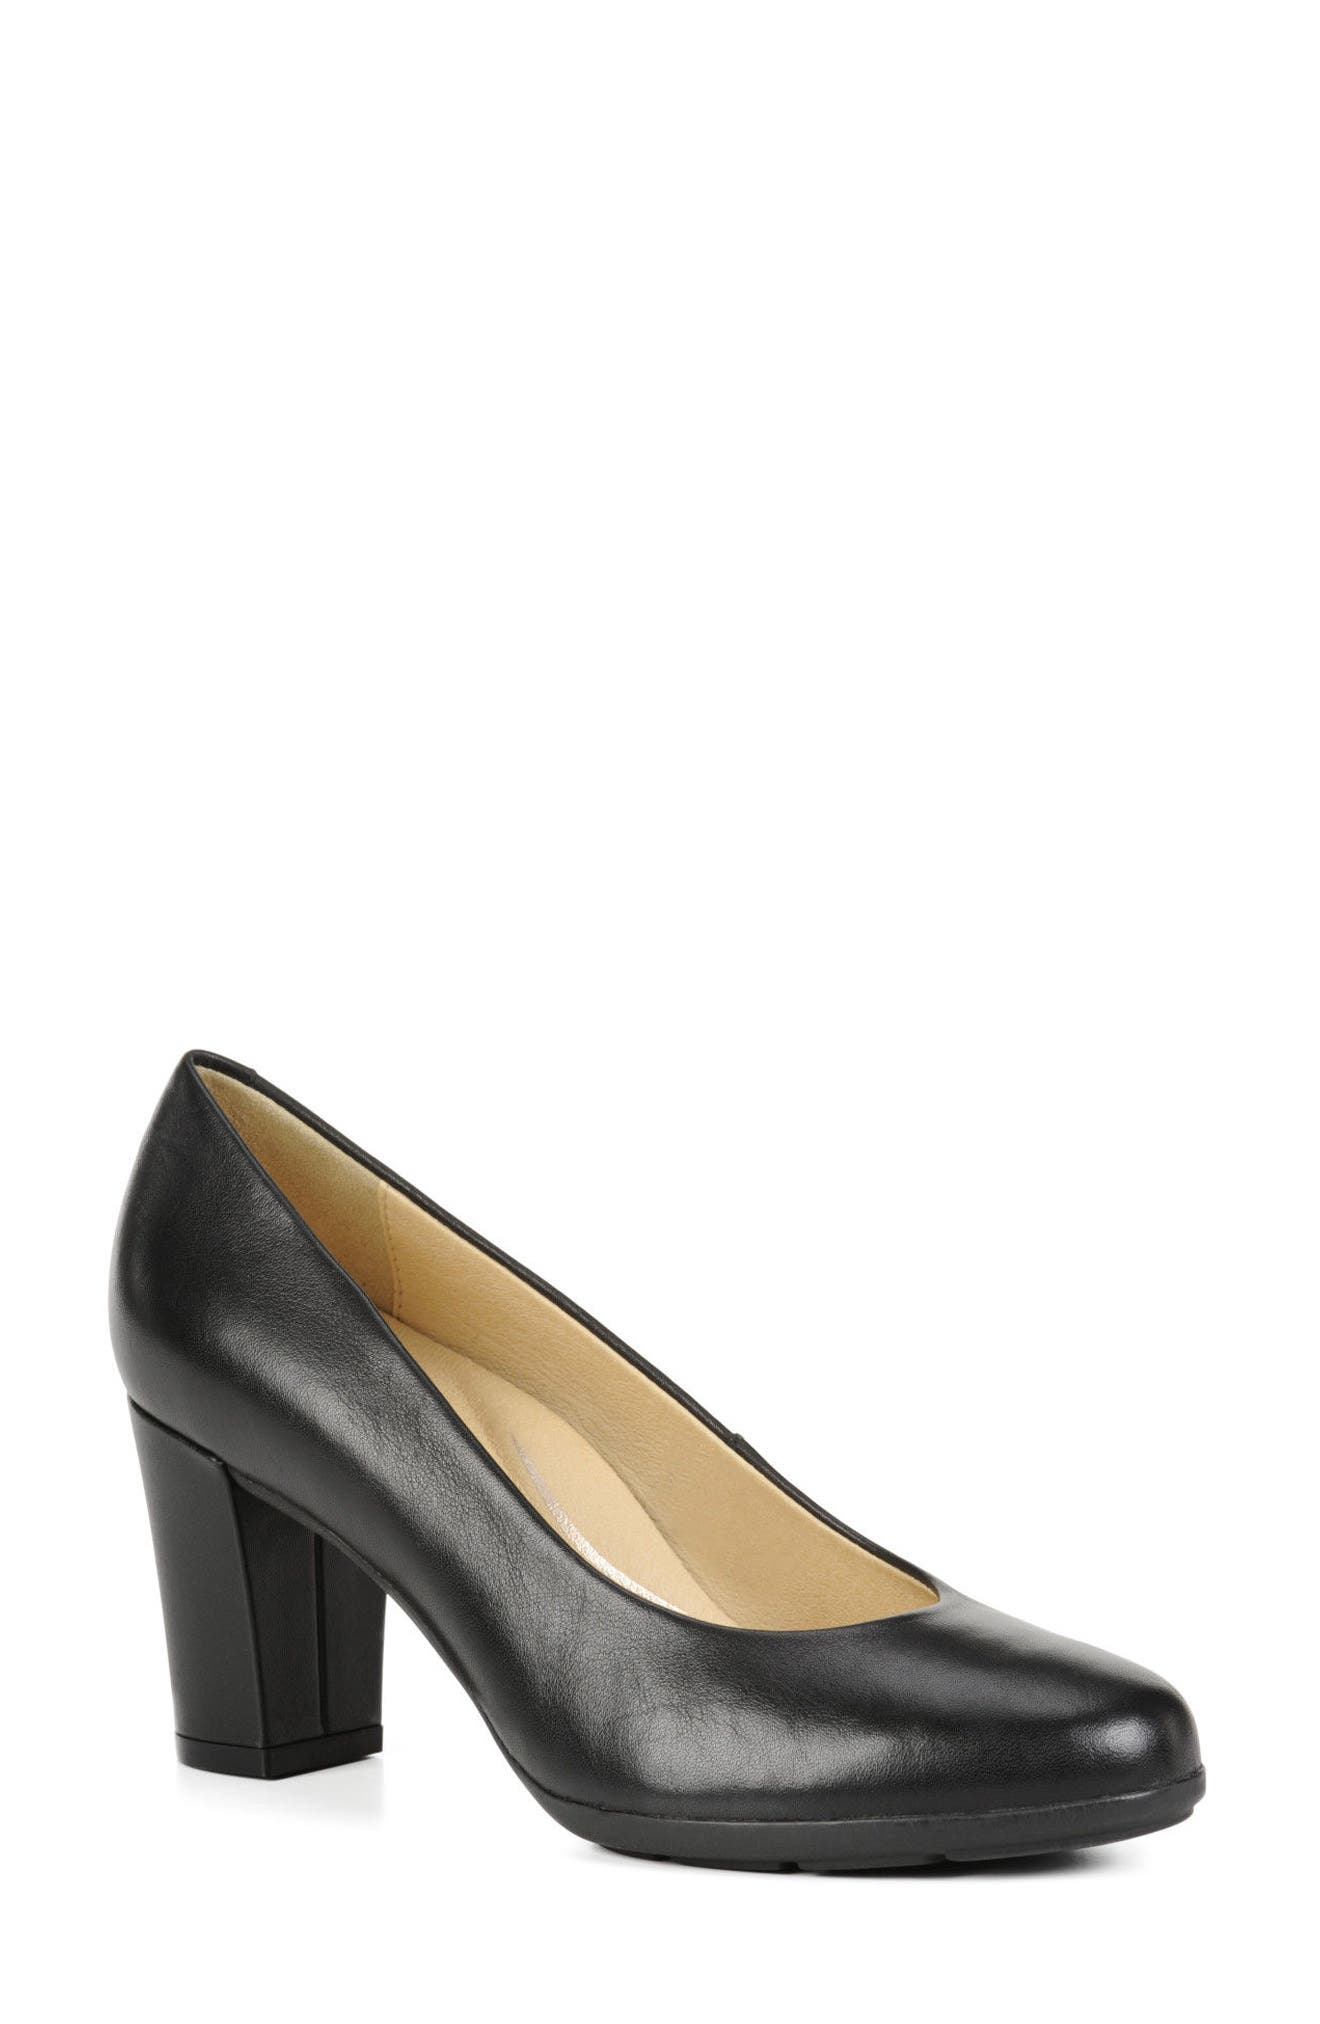 Annya Pump,                         Main,                         color, BLACK NAPPA LEATHER